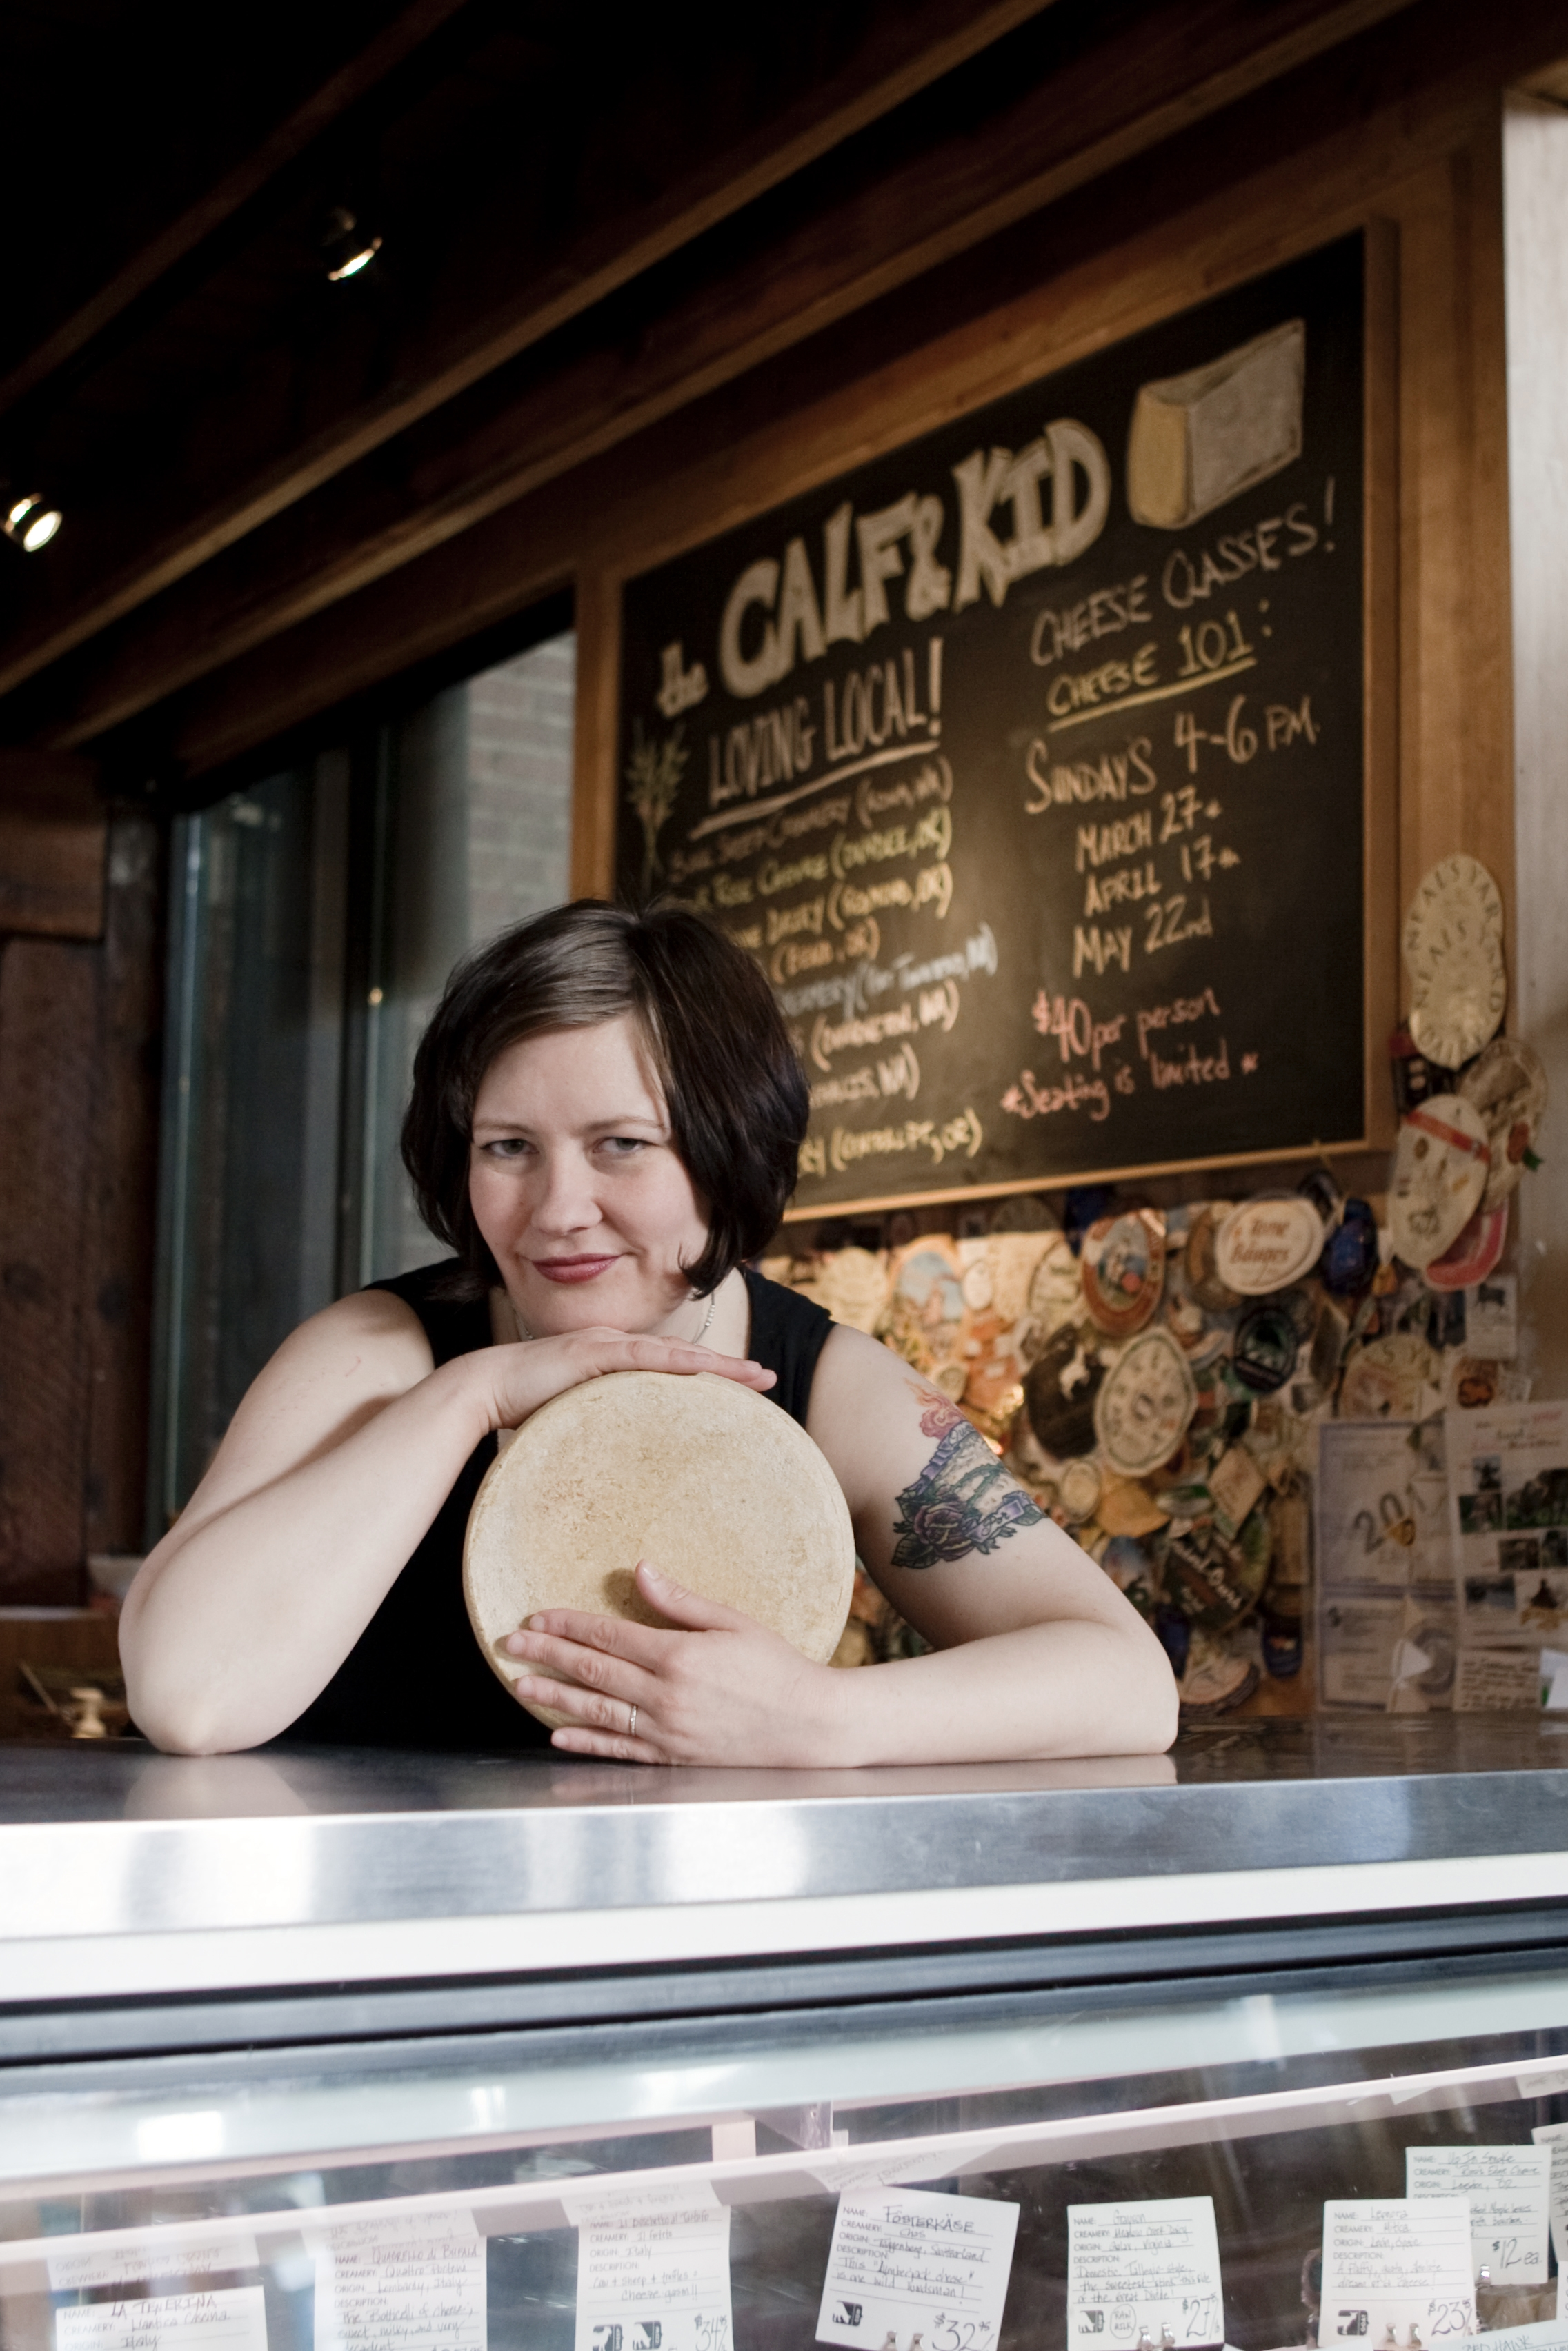 Sheri LaVigne, Owner of The Calf & Kid in Seattle.